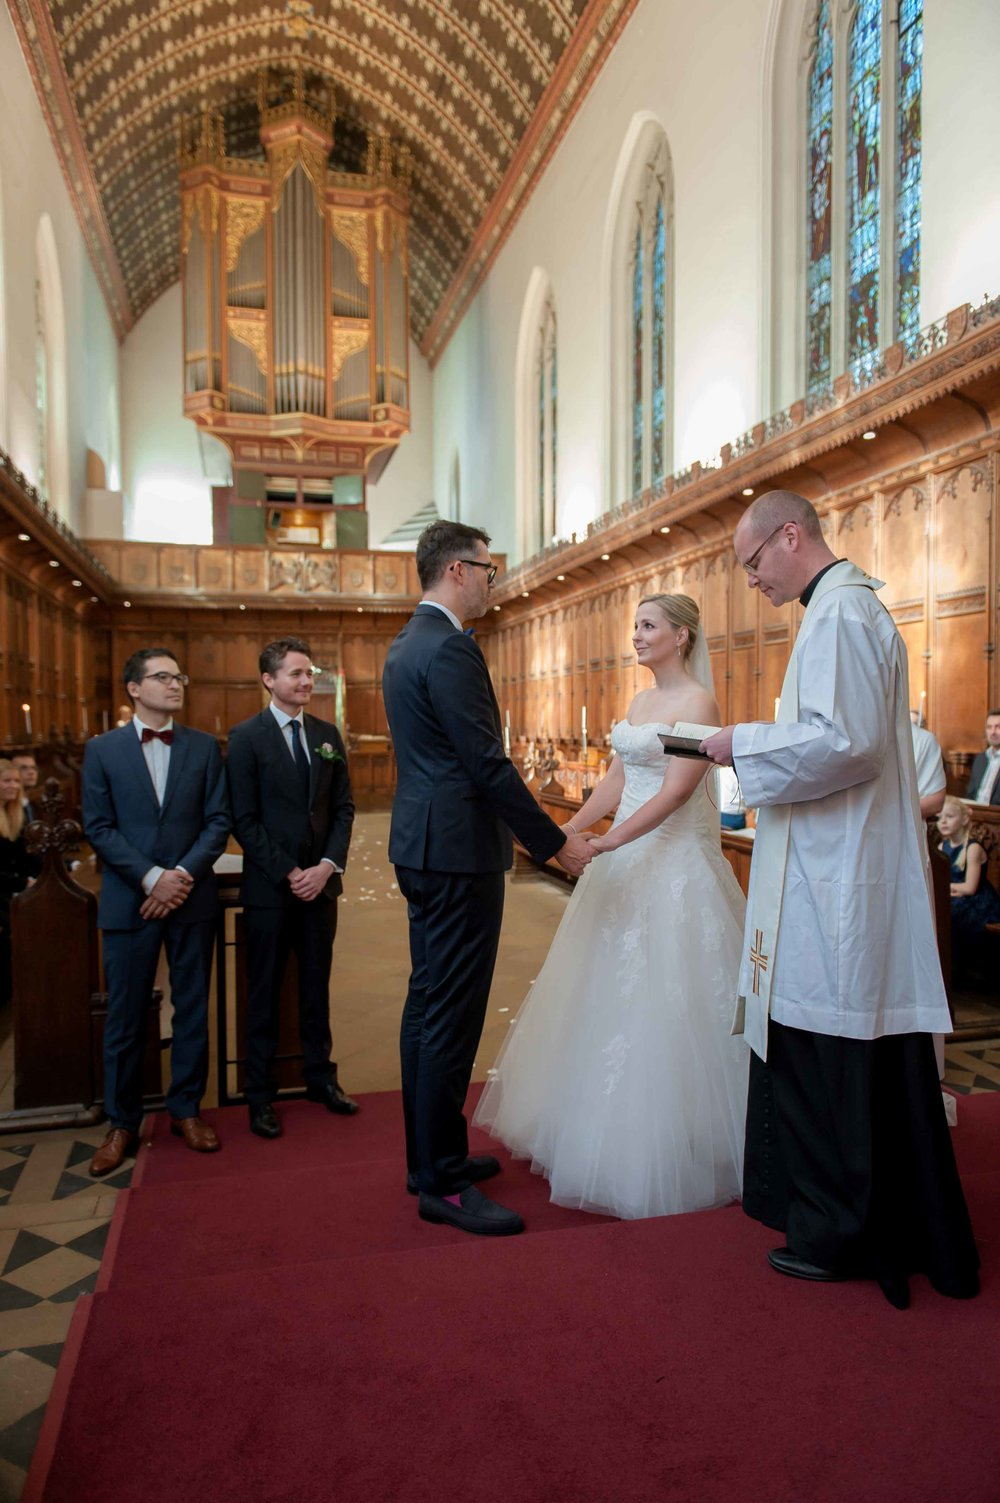 Adrian_Nicole_Charnwood_Weddings_Queens_College_Cambridge-1020.jpg